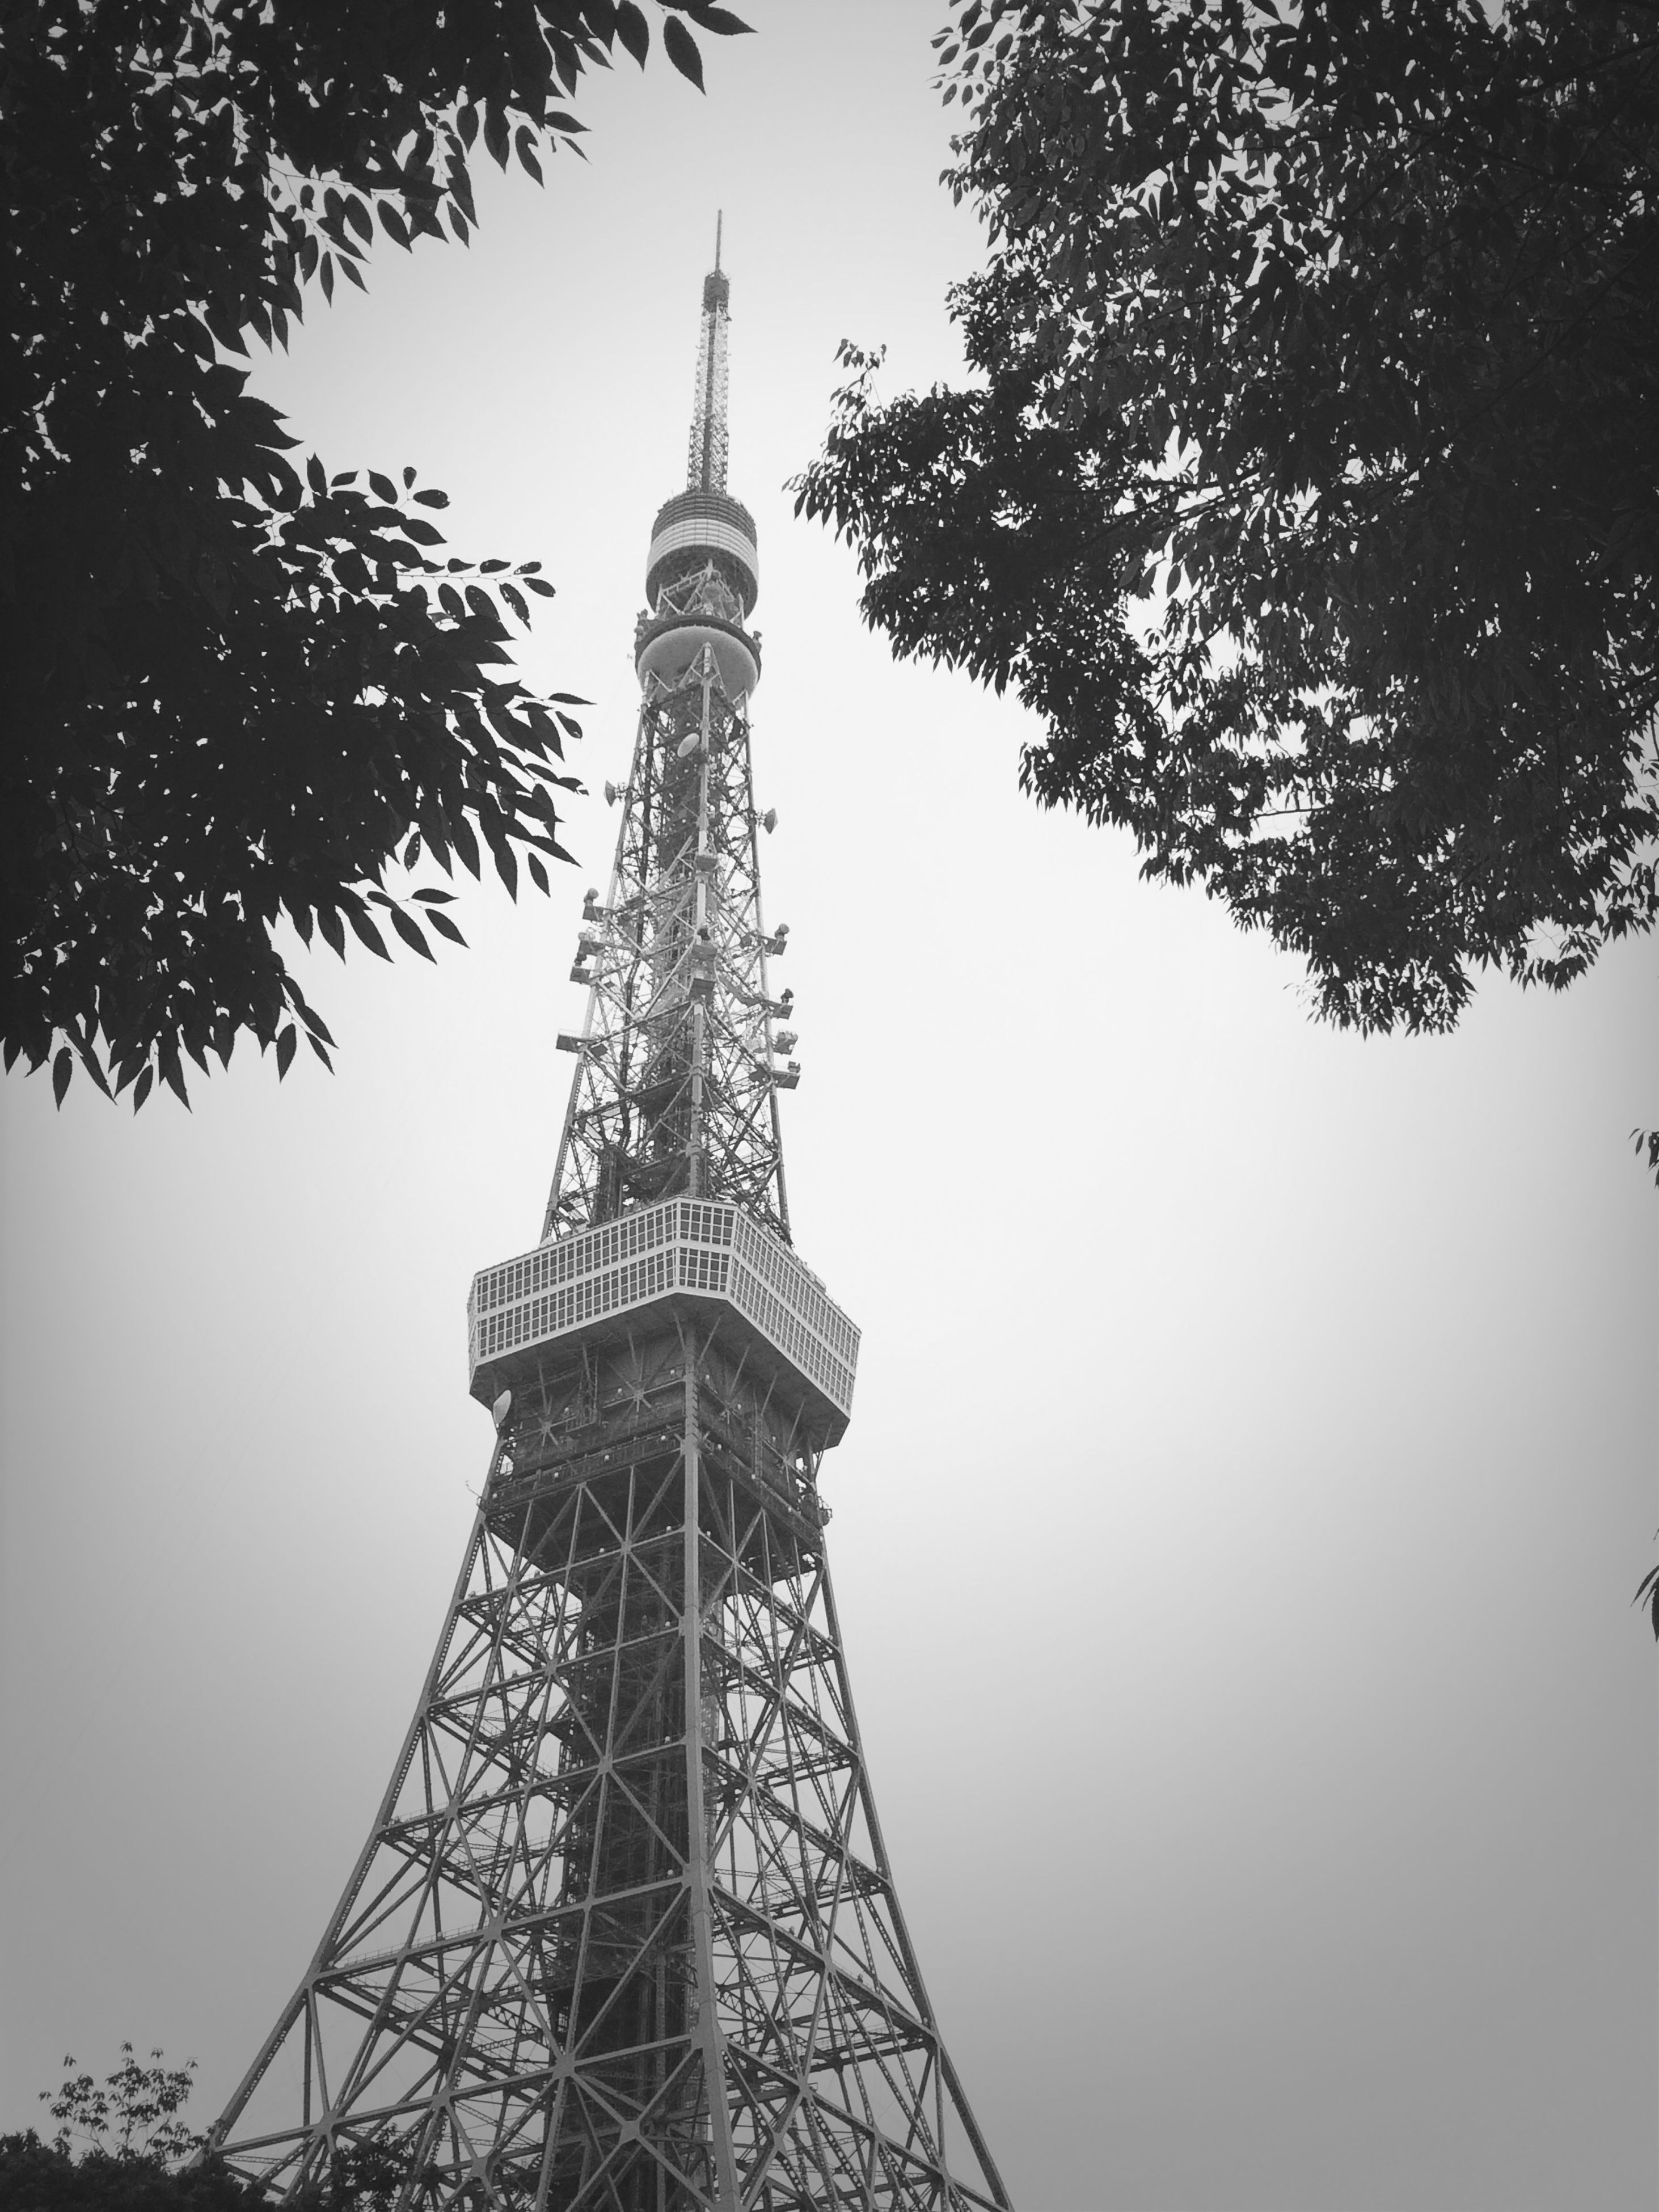 tower, tall - high, communications tower, low angle view, international landmark, built structure, famous place, architecture, travel destinations, tourism, spire, capital cities, eiffel tower, travel, television tower, building exterior, fernsehturm, communication, sky, tree